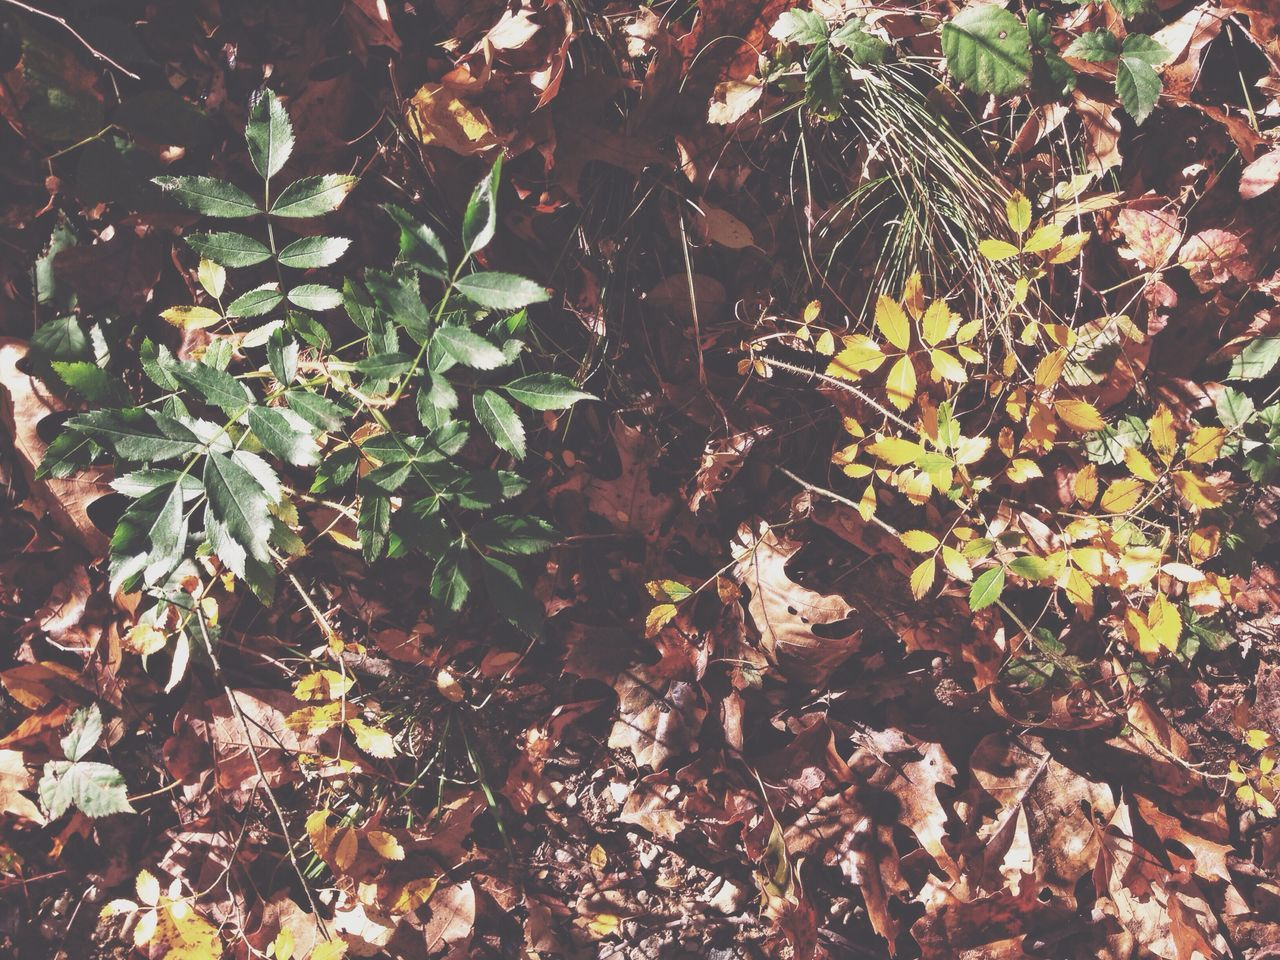 leaf, nature, growth, no people, forest, outdoors, autumn, foliage, day, plant, close-up